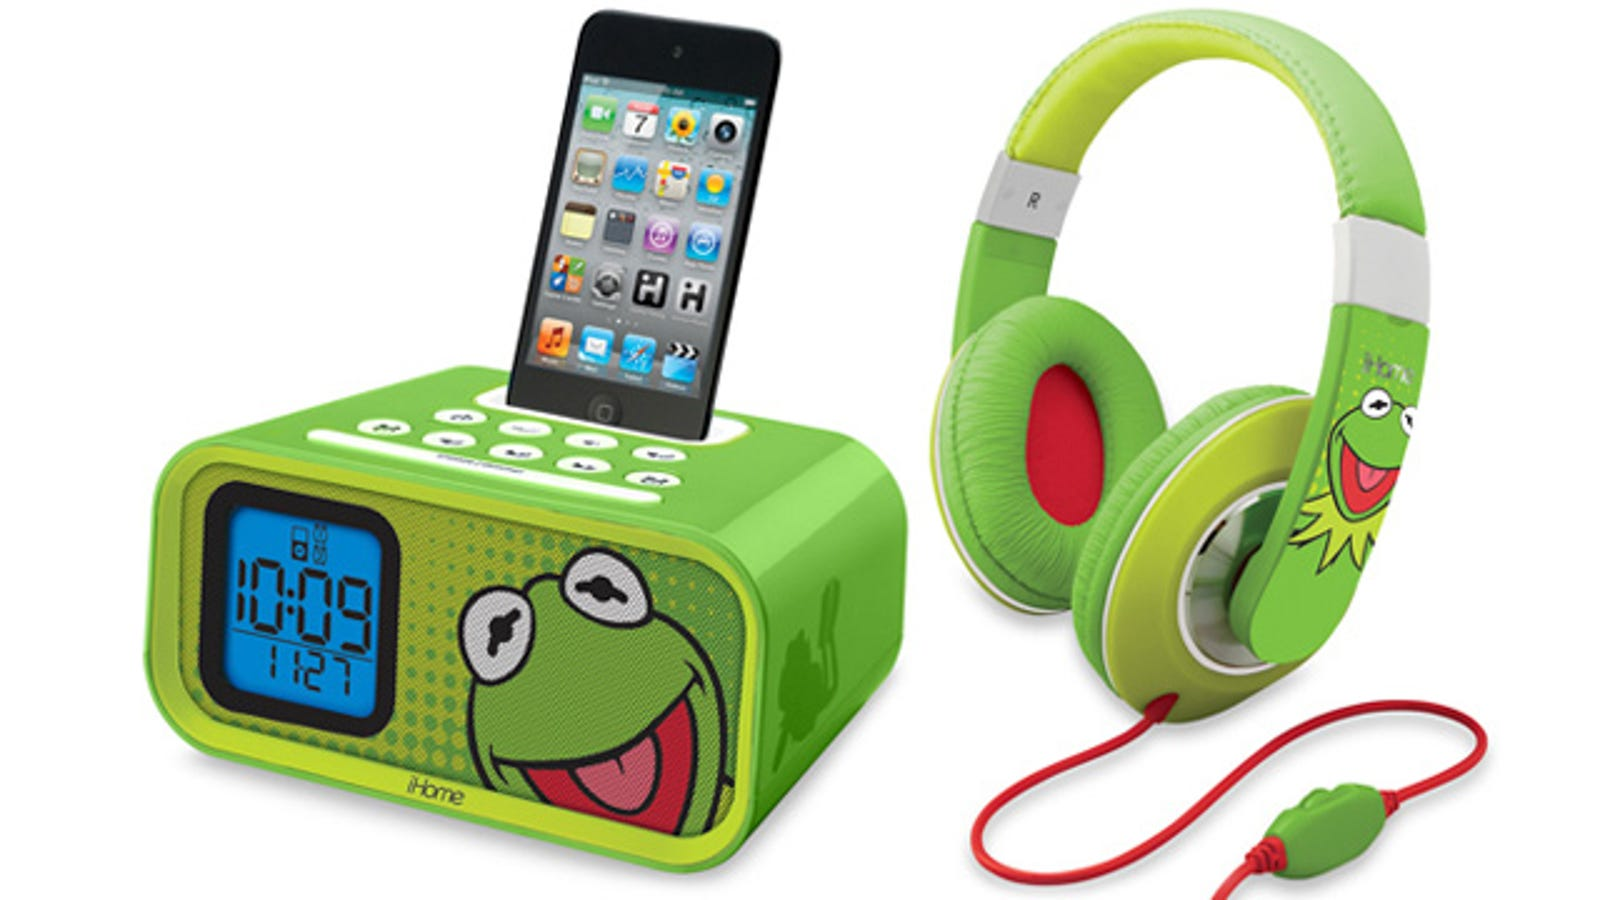 bose earbuds overear - Being Green Isn't So Difficult With iHome's Kermit Gear